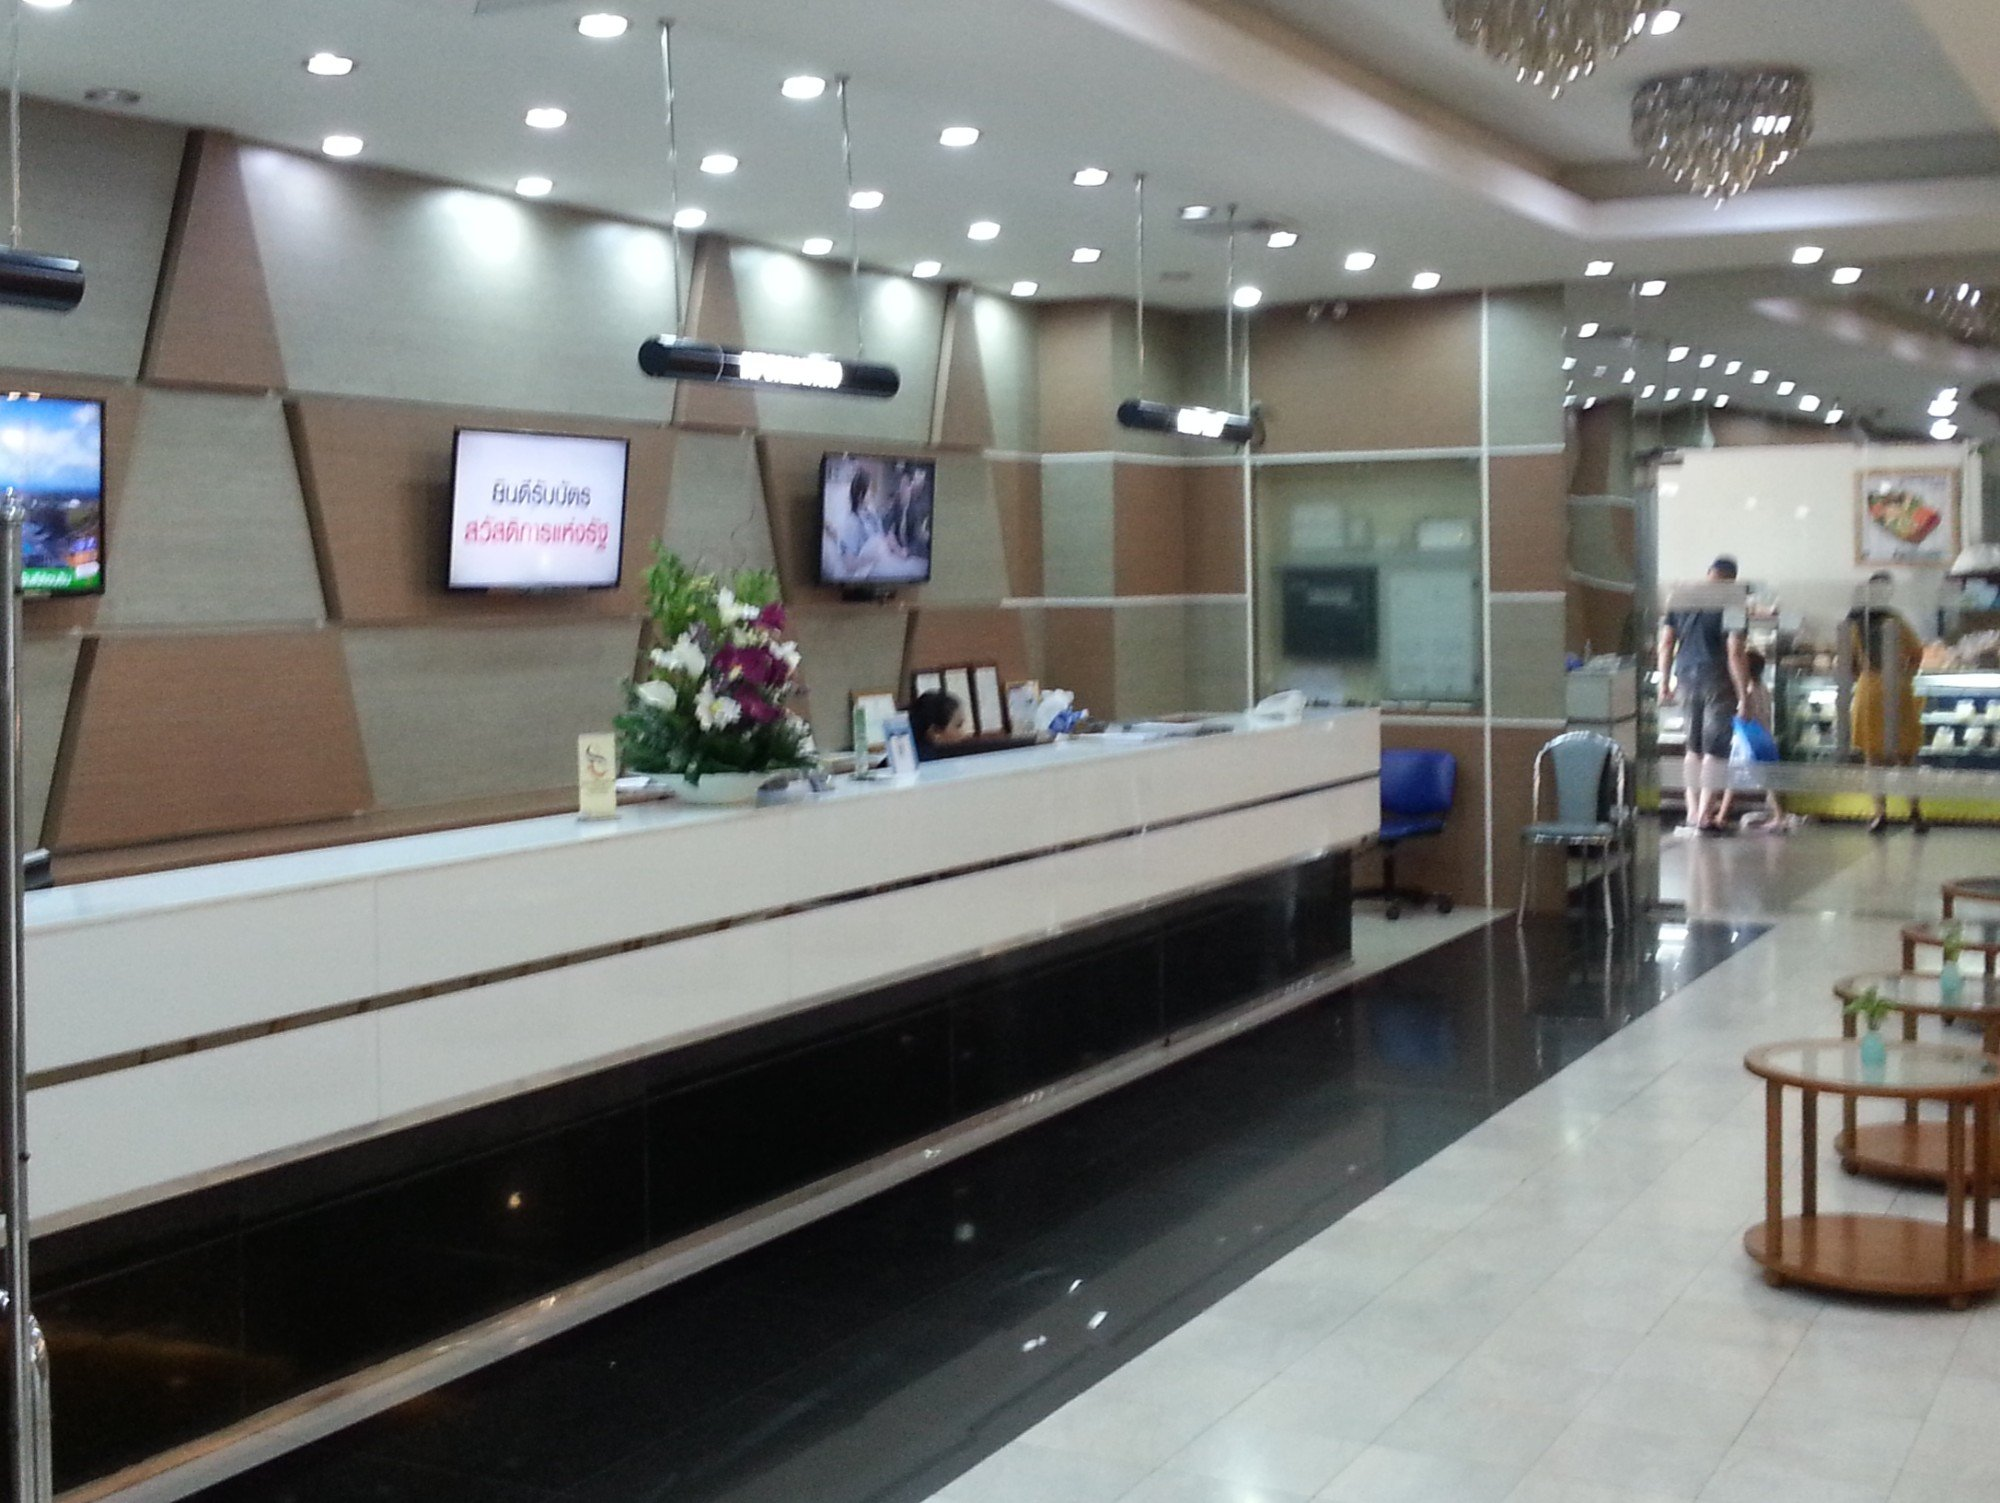 'pha naaek dtaawn rap' is the Thai word for reception desk